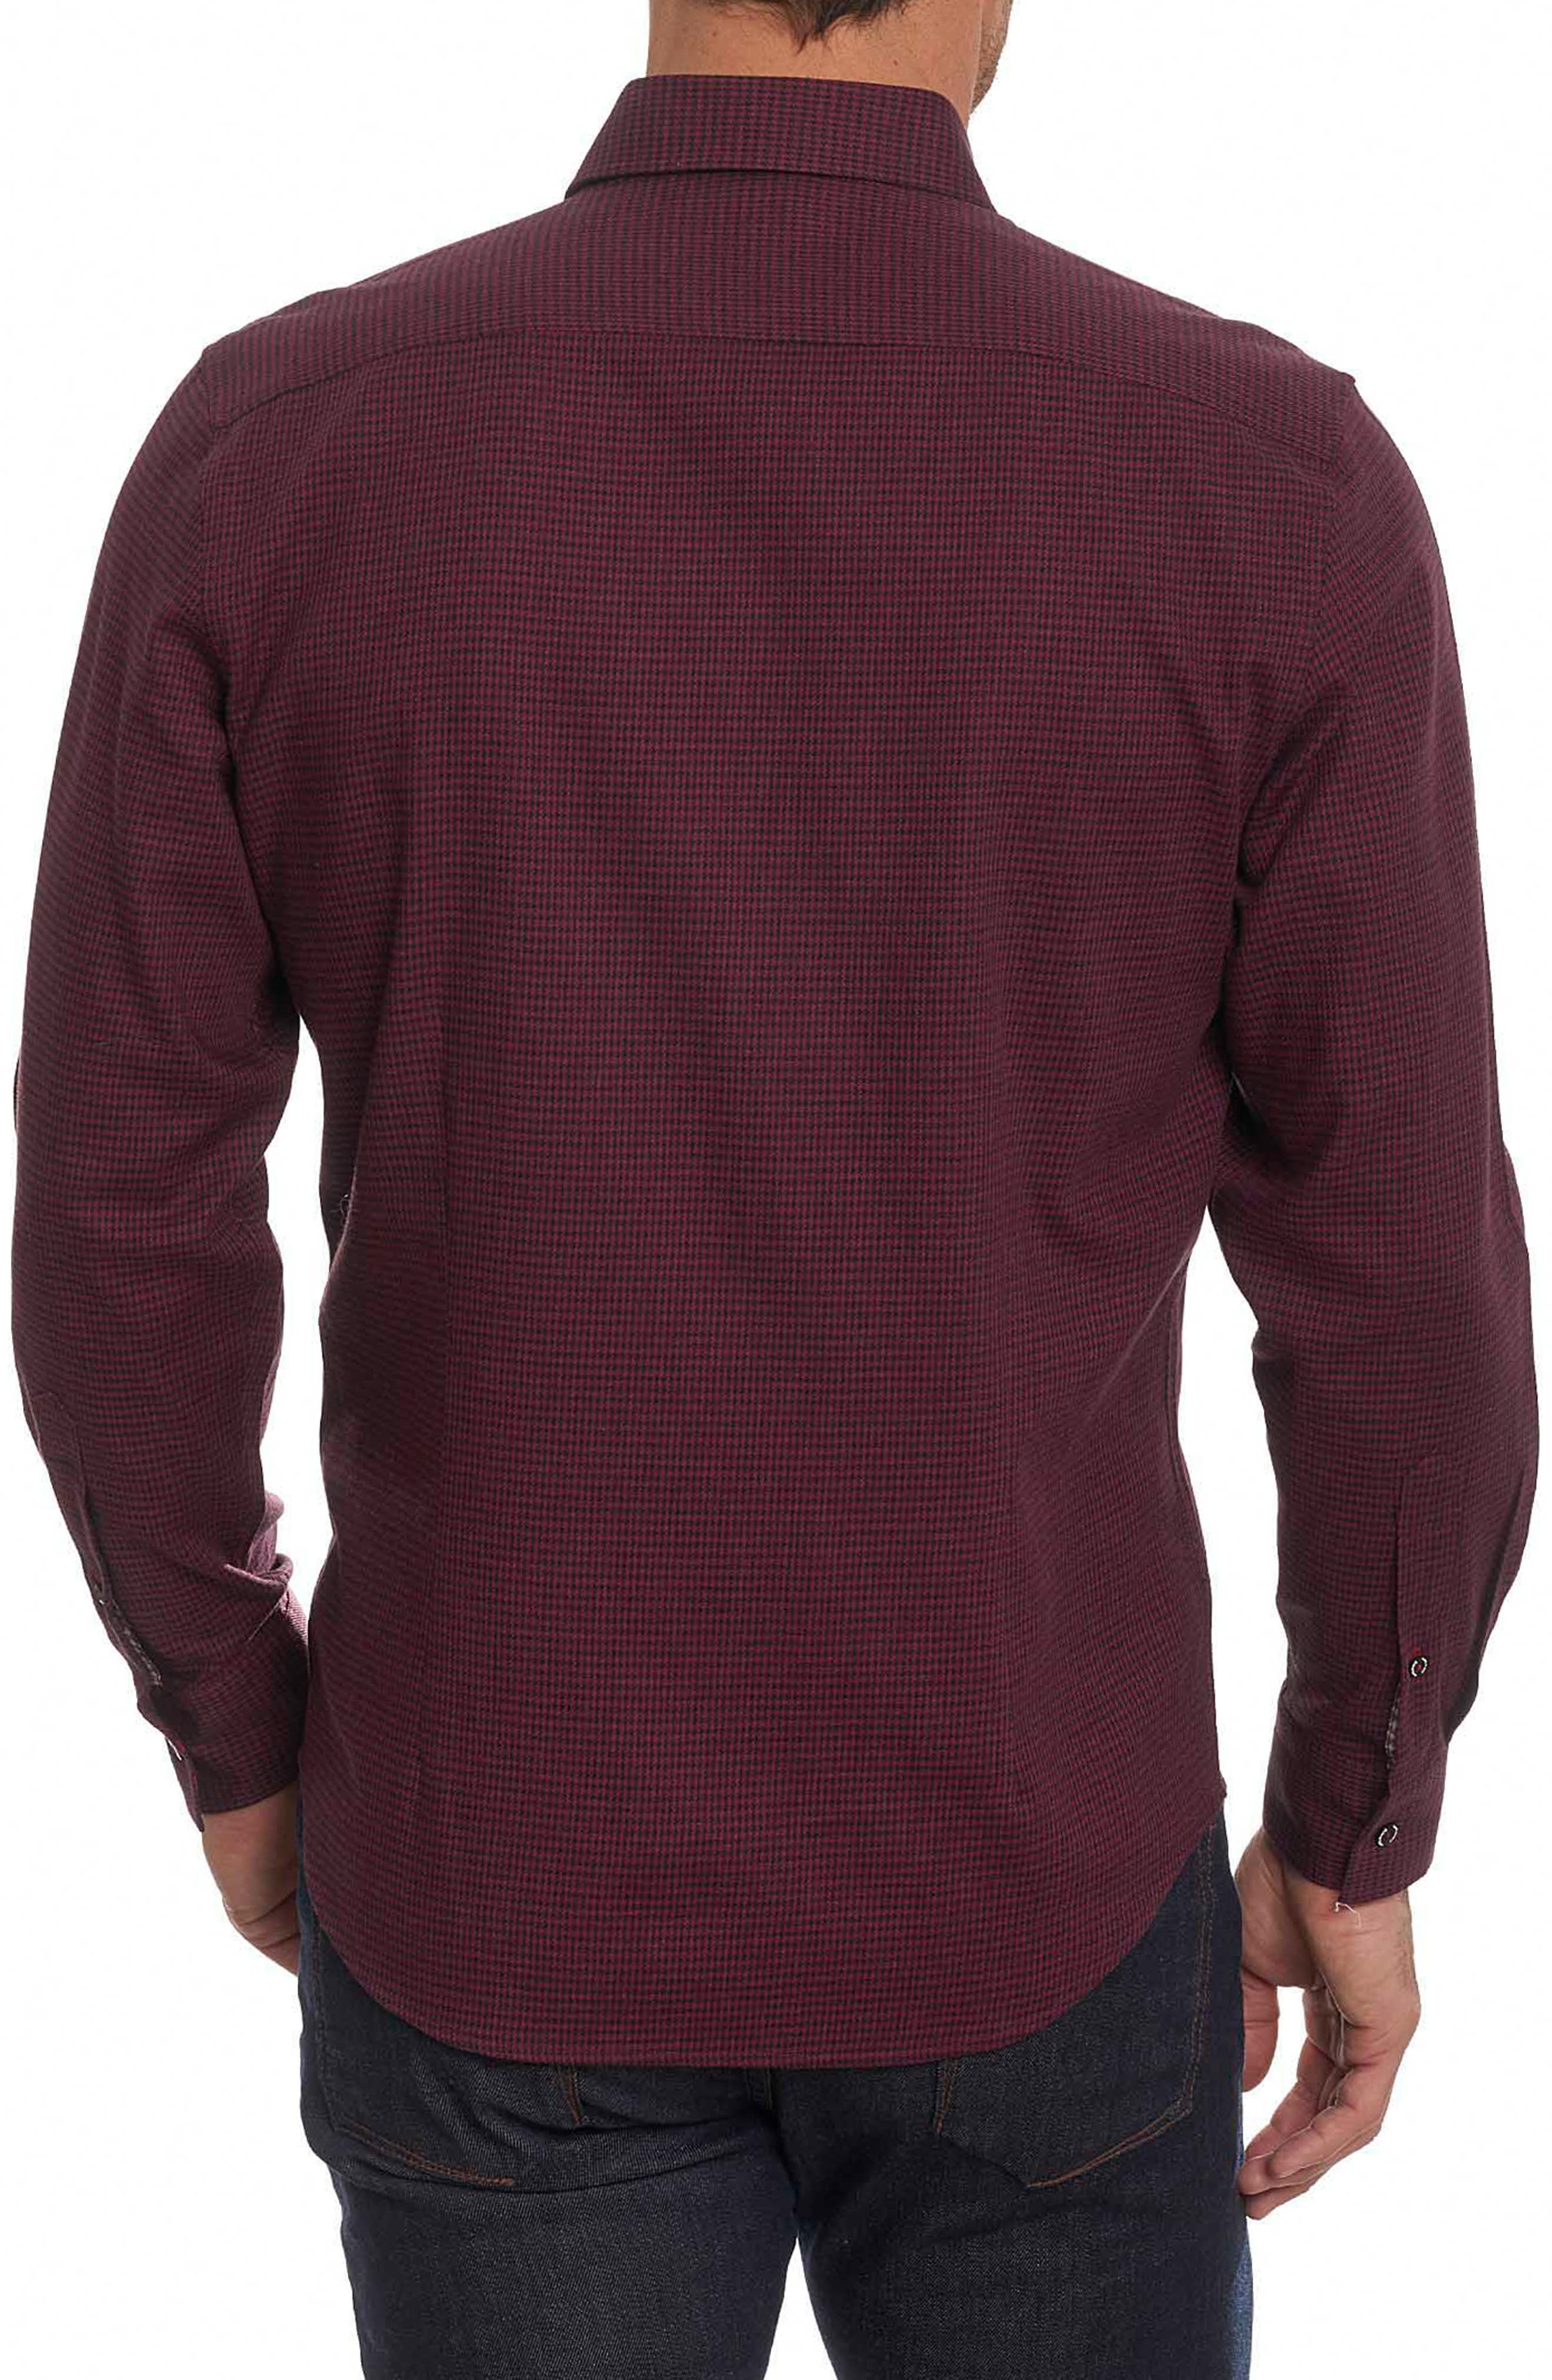 Colin Tailored Fit Sport Shirt,                             Alternate thumbnail 4, color,